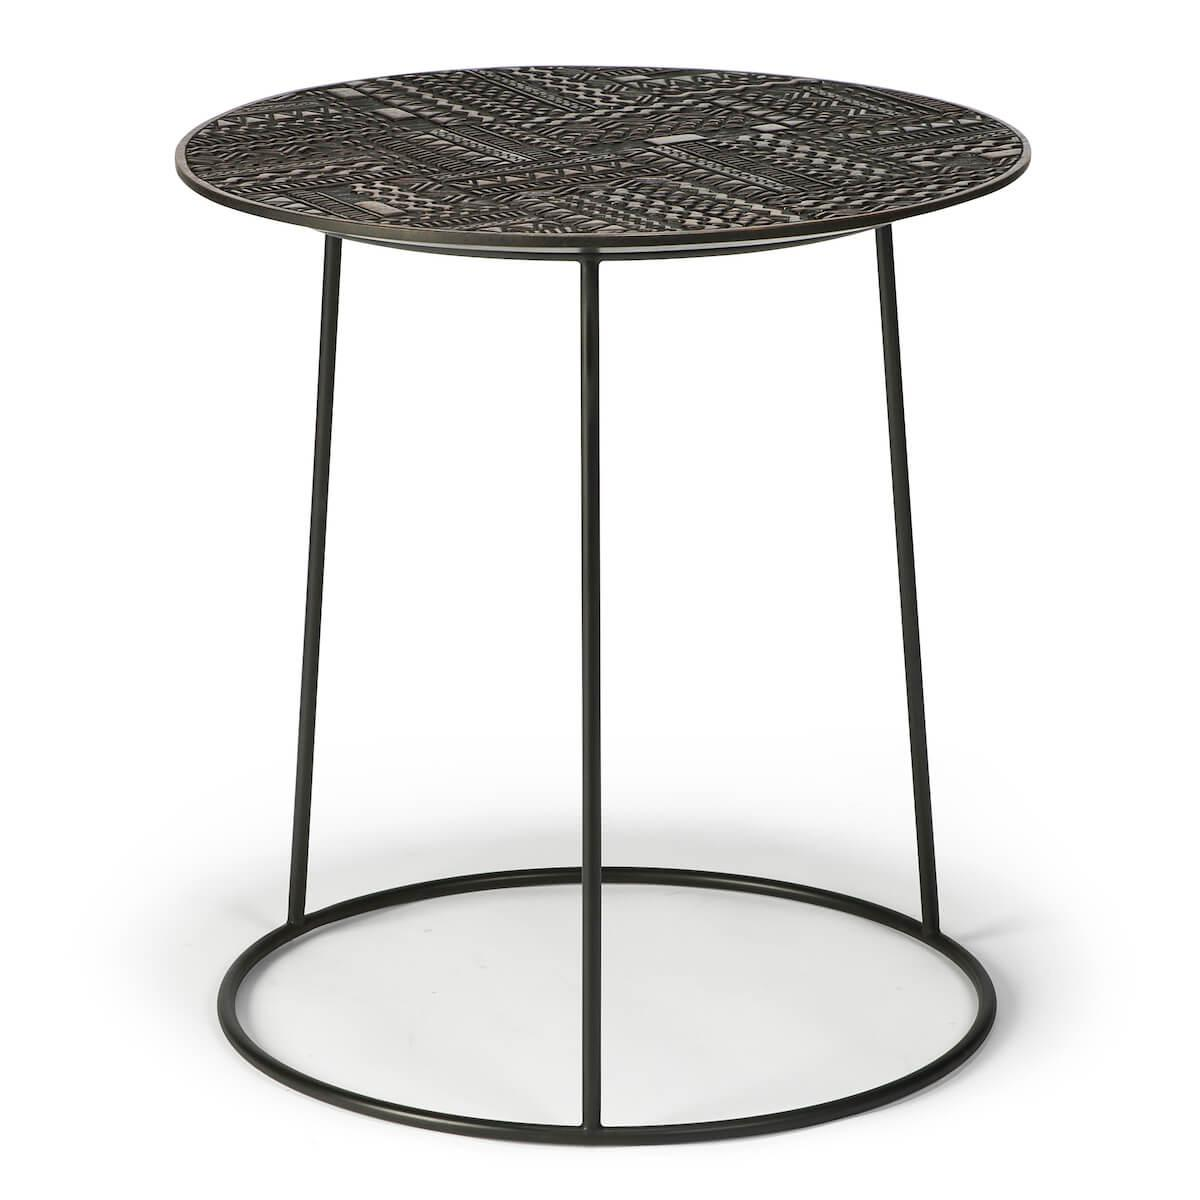 Table d'appoint ronde 58cm TABWA Ethnicraft teck noir